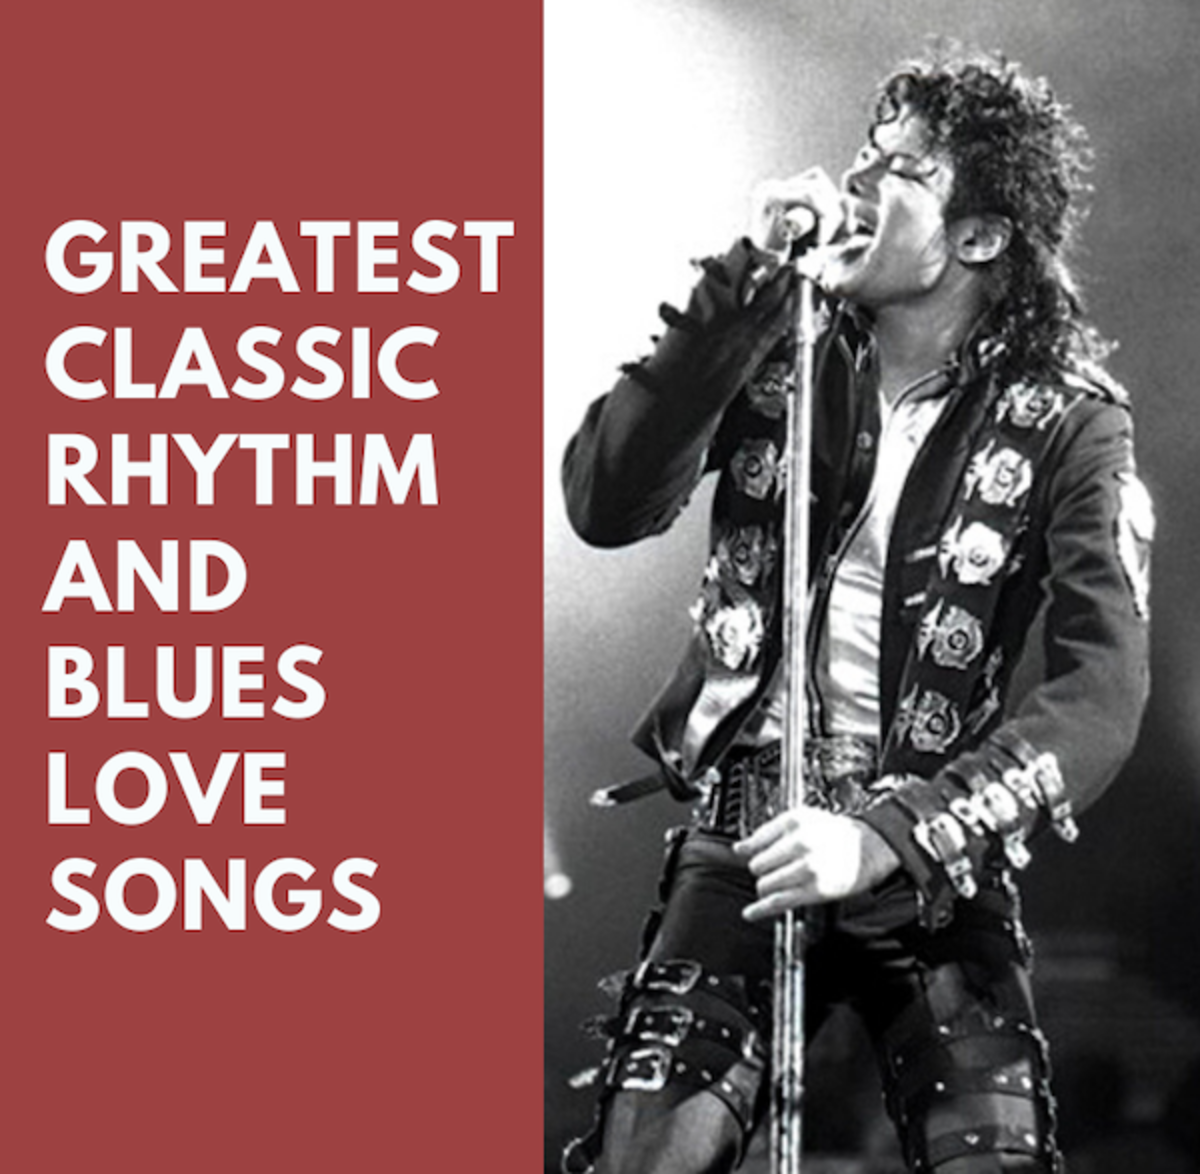 17 Greatest Classic Rhythm and Blues Love Songs